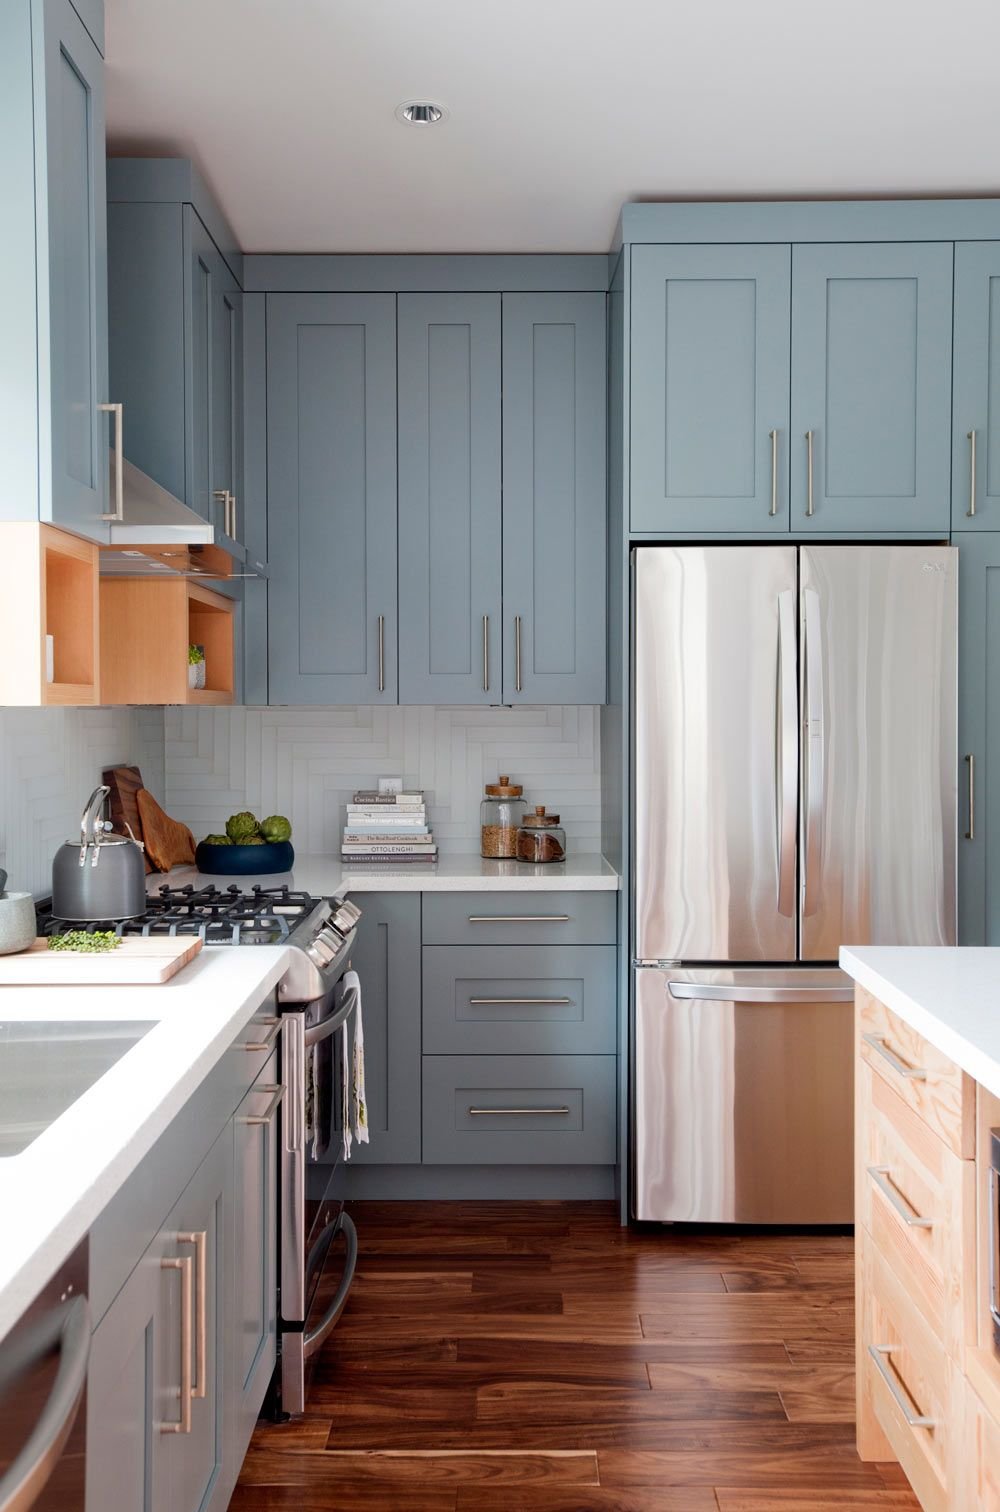 Best Way To Paint Kitchen Cabinets A Step By Guide Painting